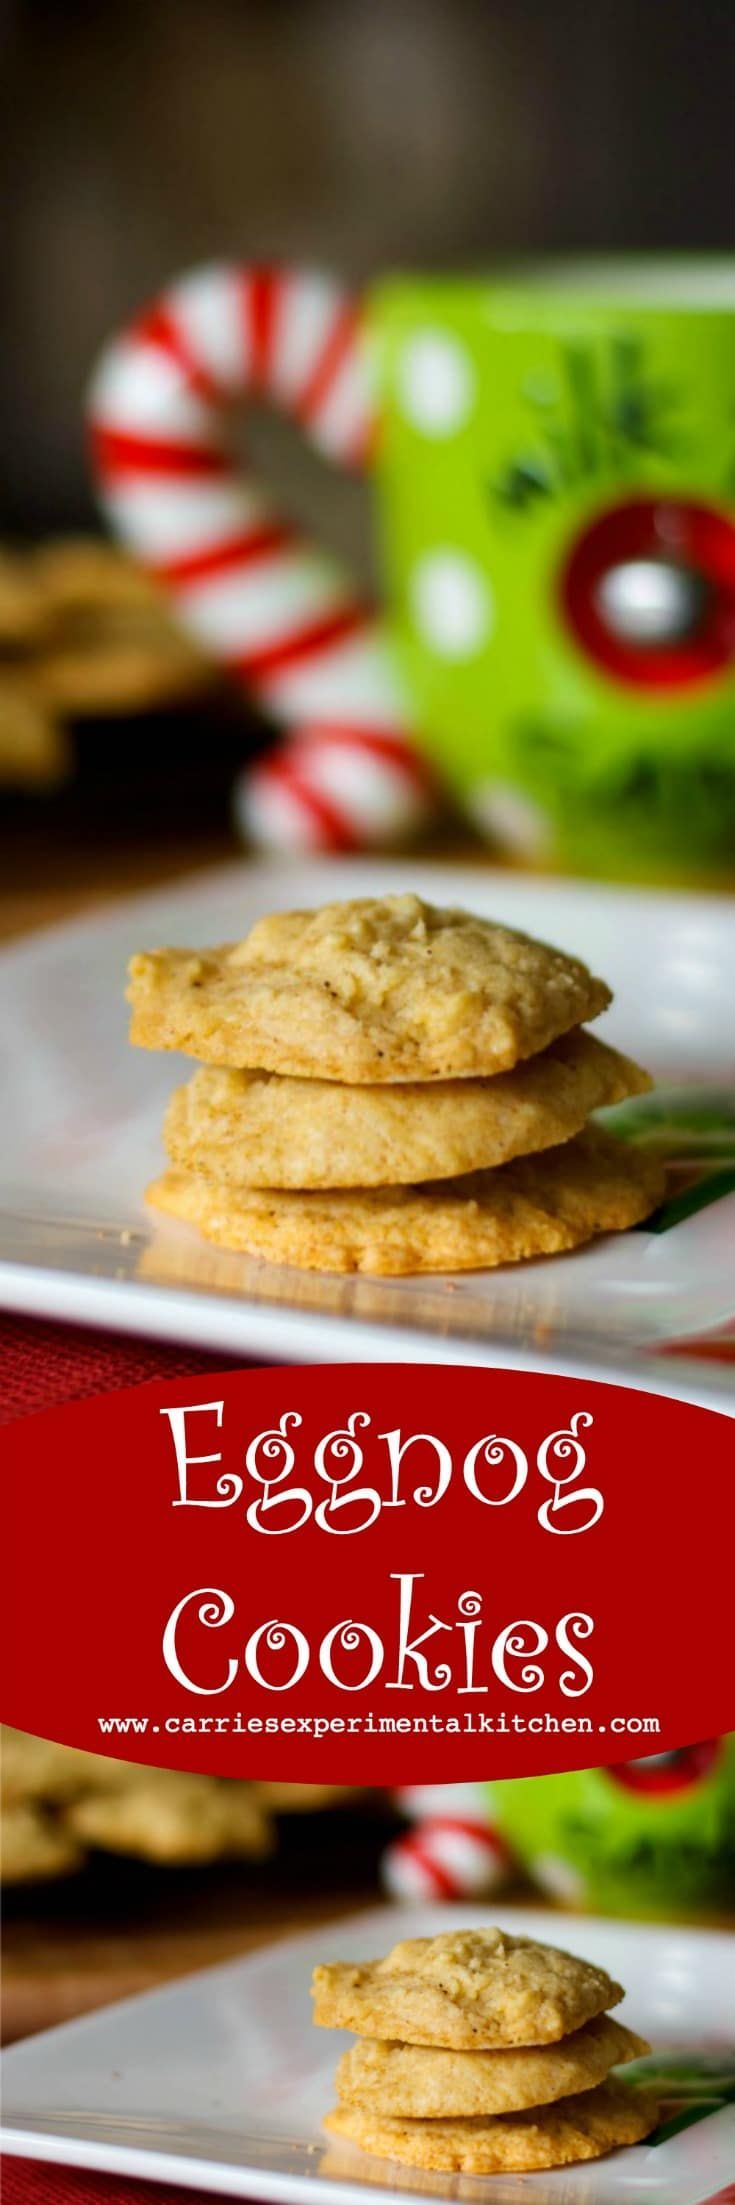 """Don't forget to leave a plate of cookies out on Christmas Eve. The """"big guy"""" looks forward to these soft and chewy Eggnog Cookies, made with creamy eggnog, cinnamon and nutmeg every year. #cookies #eggnog #christmascookies #christmas #baking"""